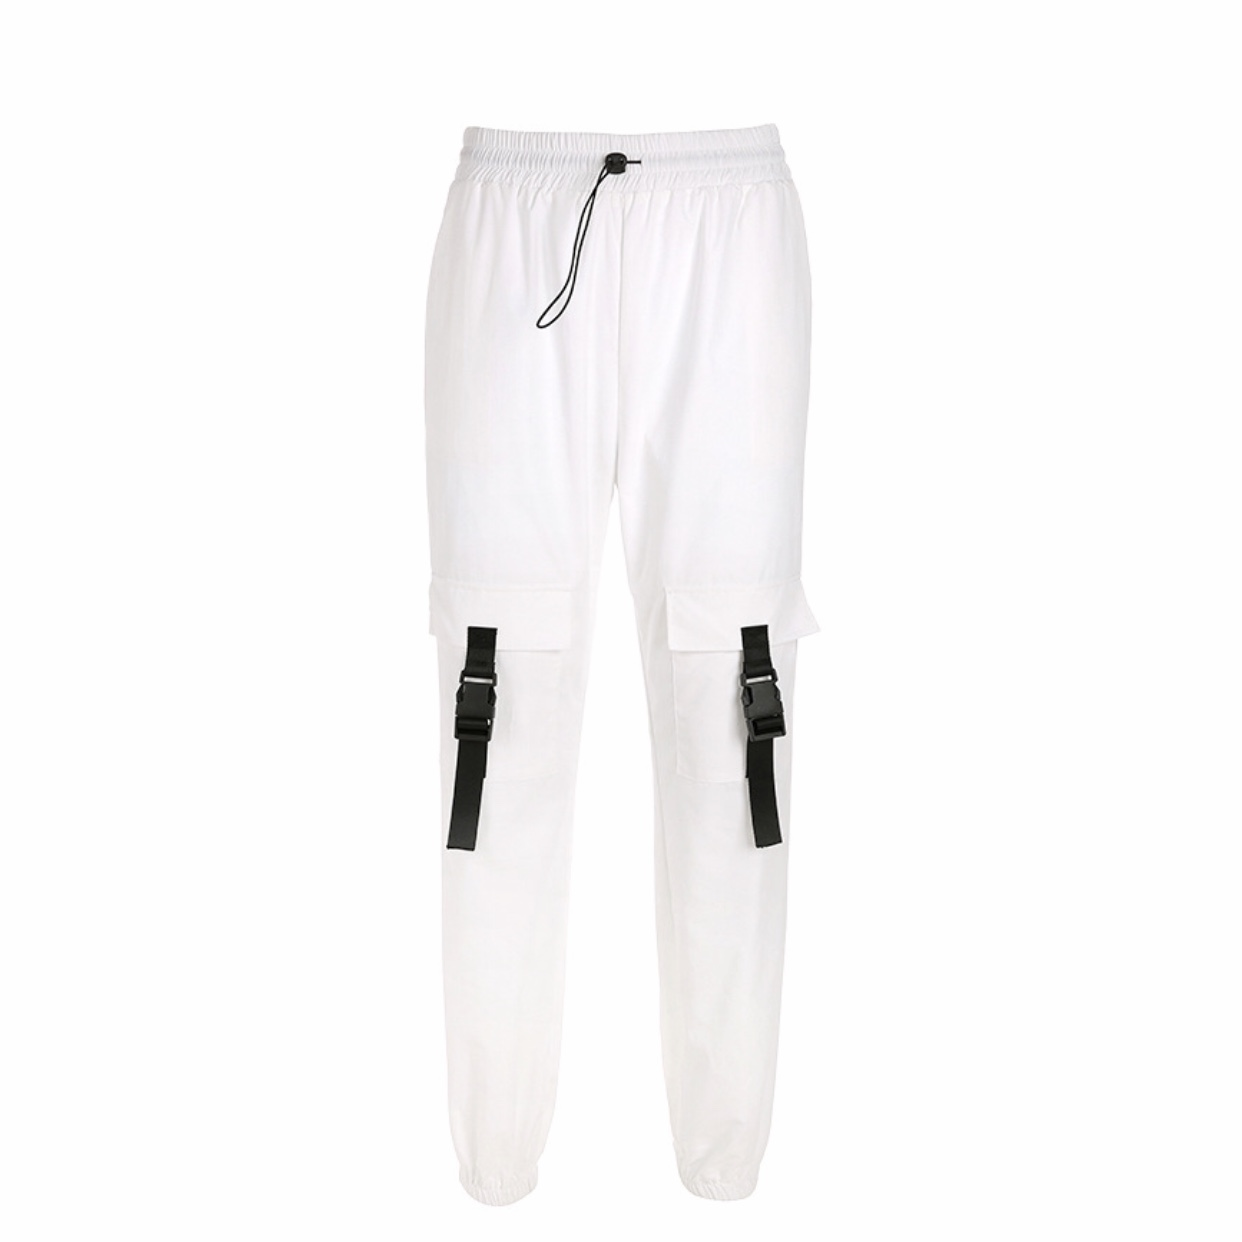 White Wind Trousers